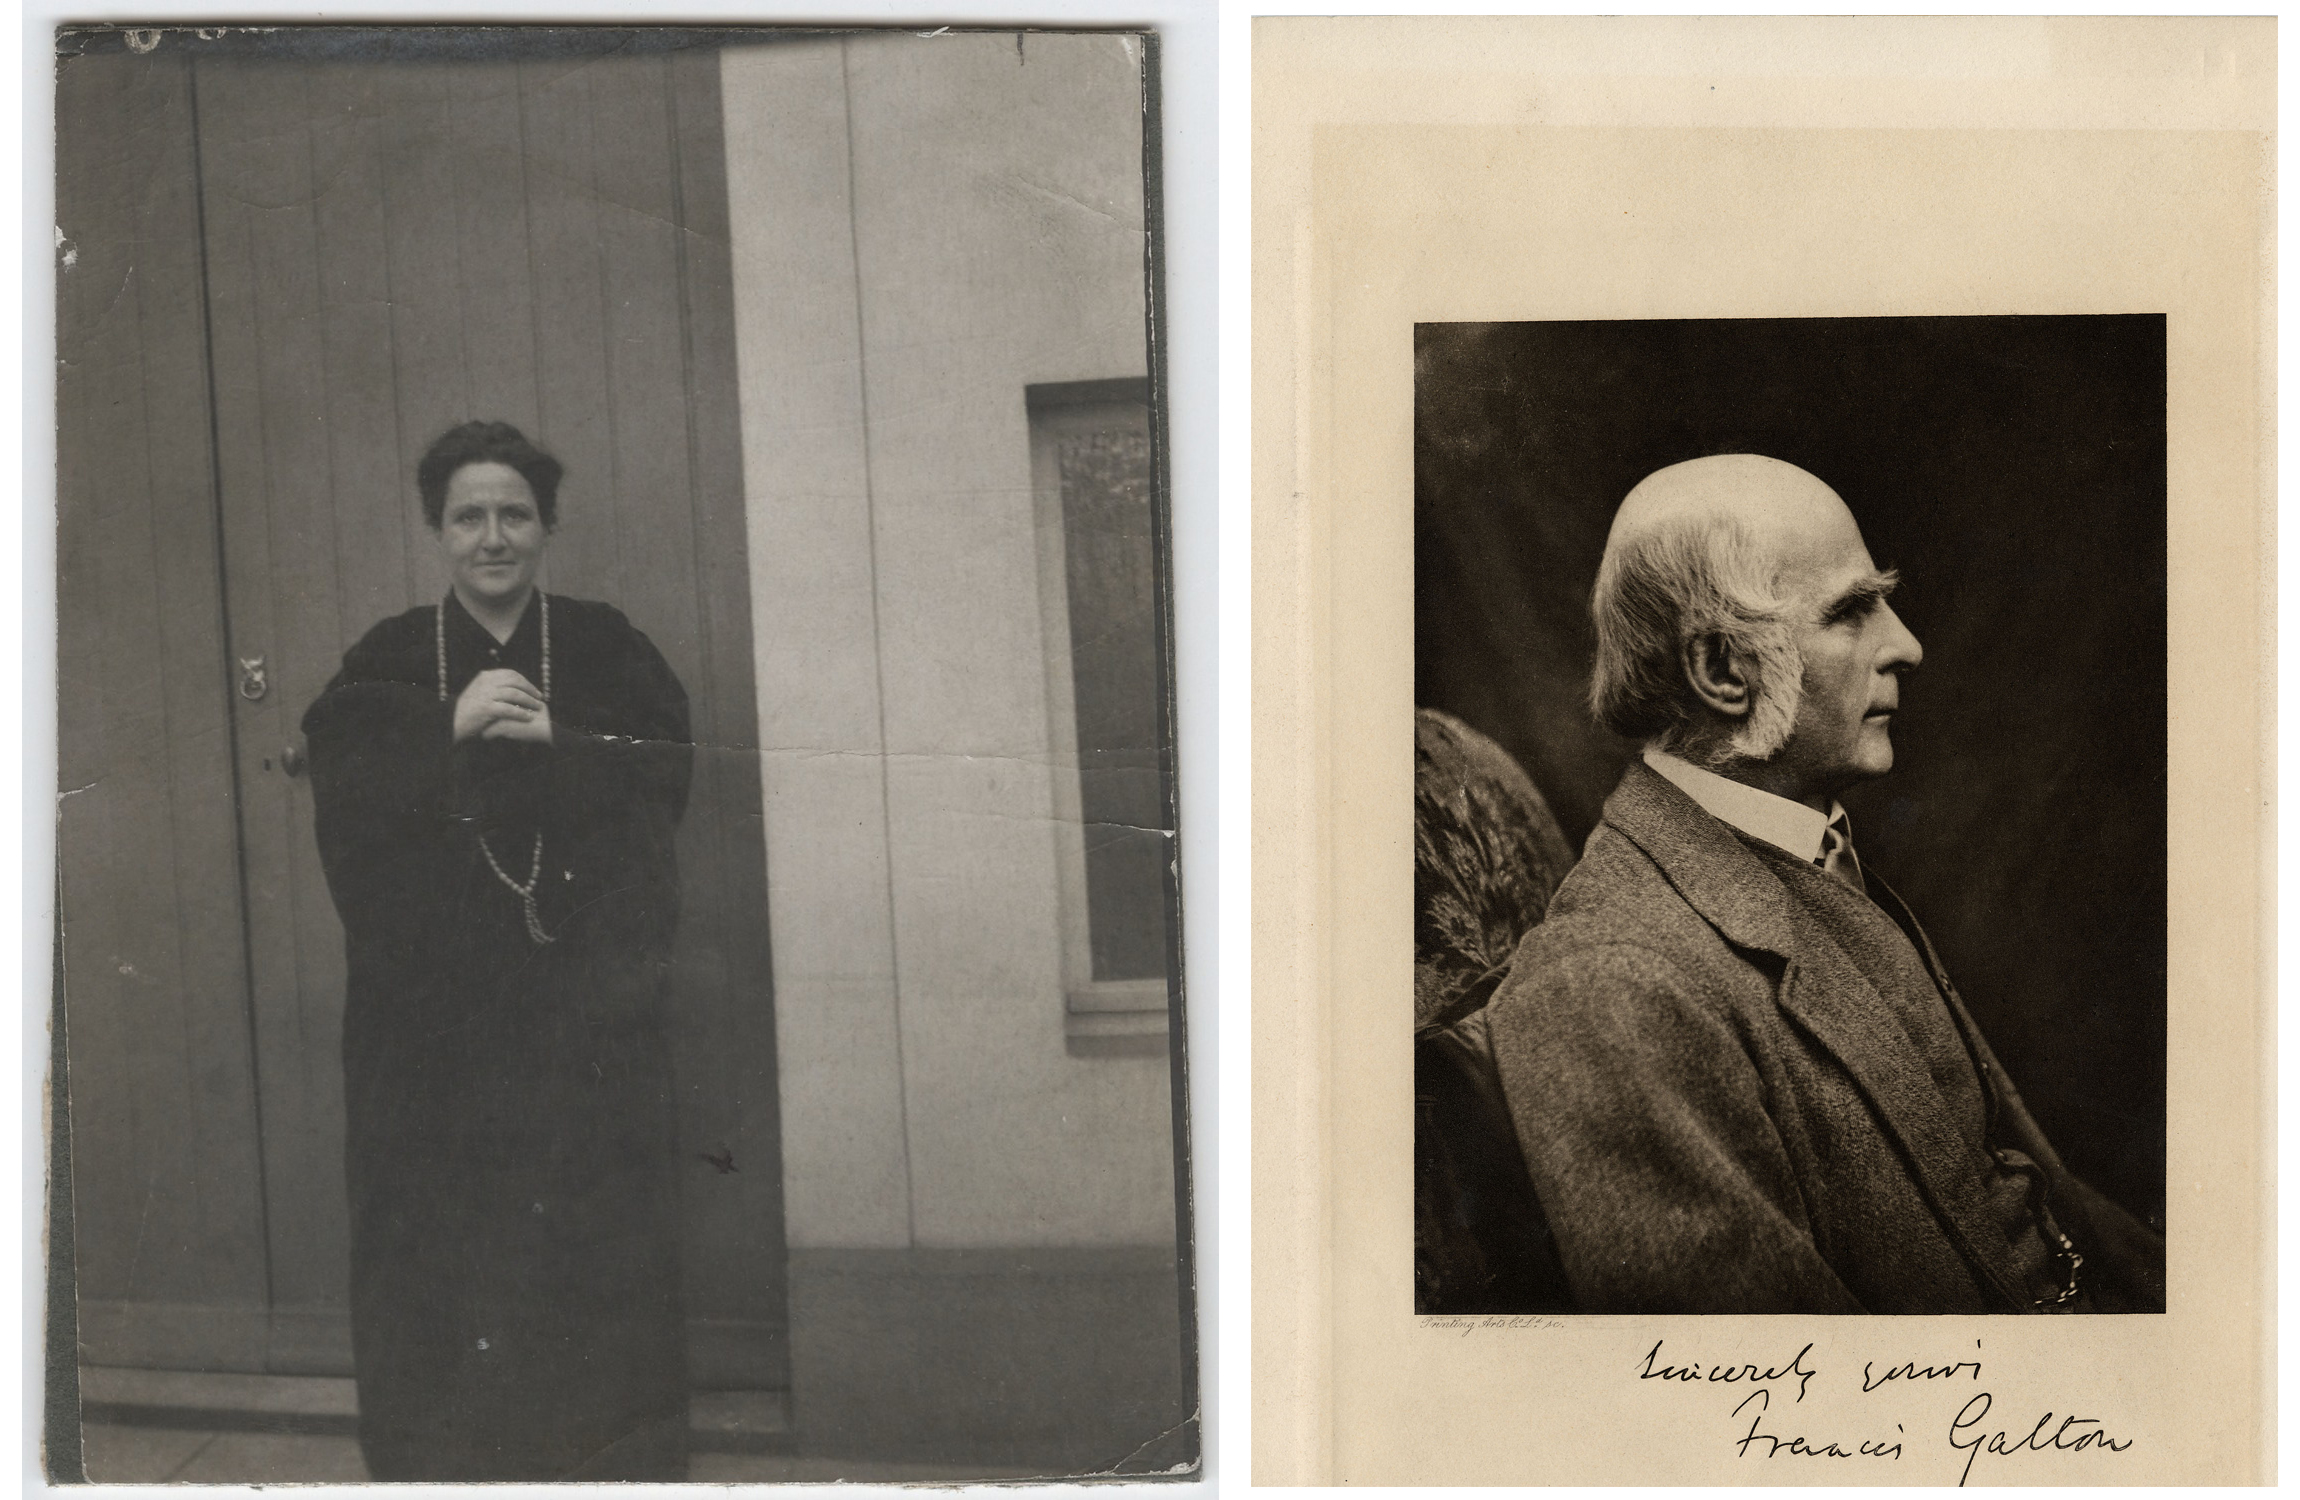 Gertrude Stein and Francis Galton